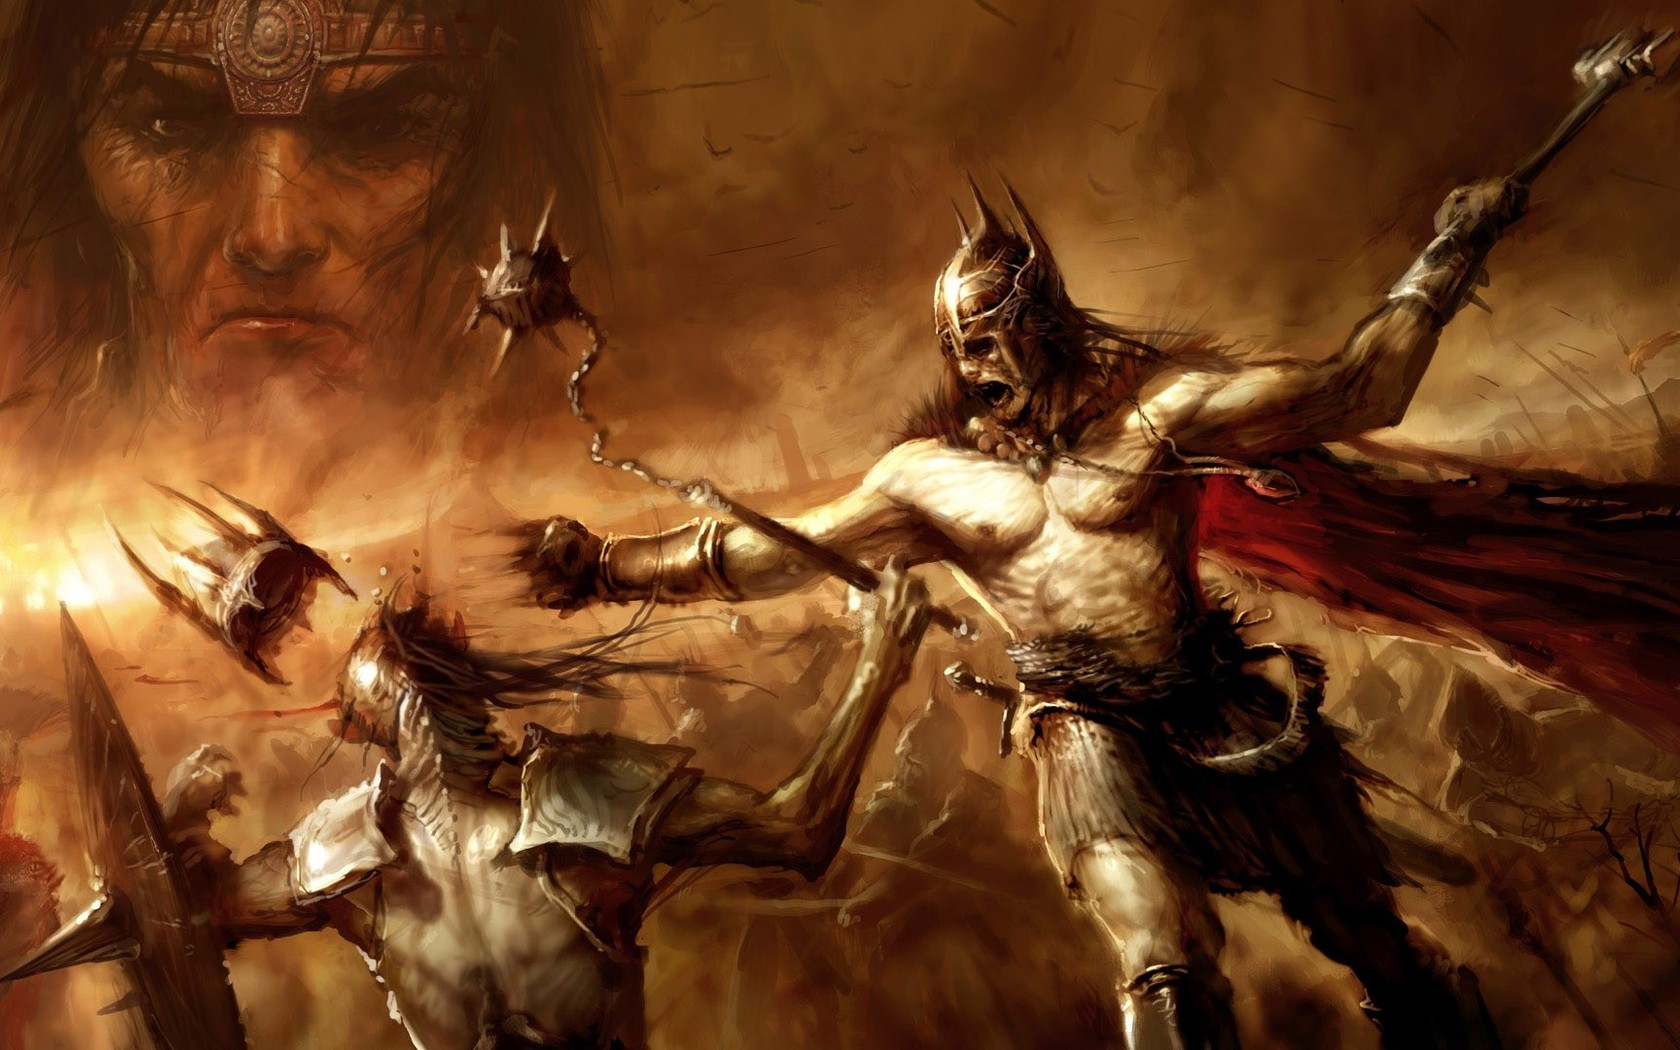 Age of Conan wallpaper 9358 1680x1050